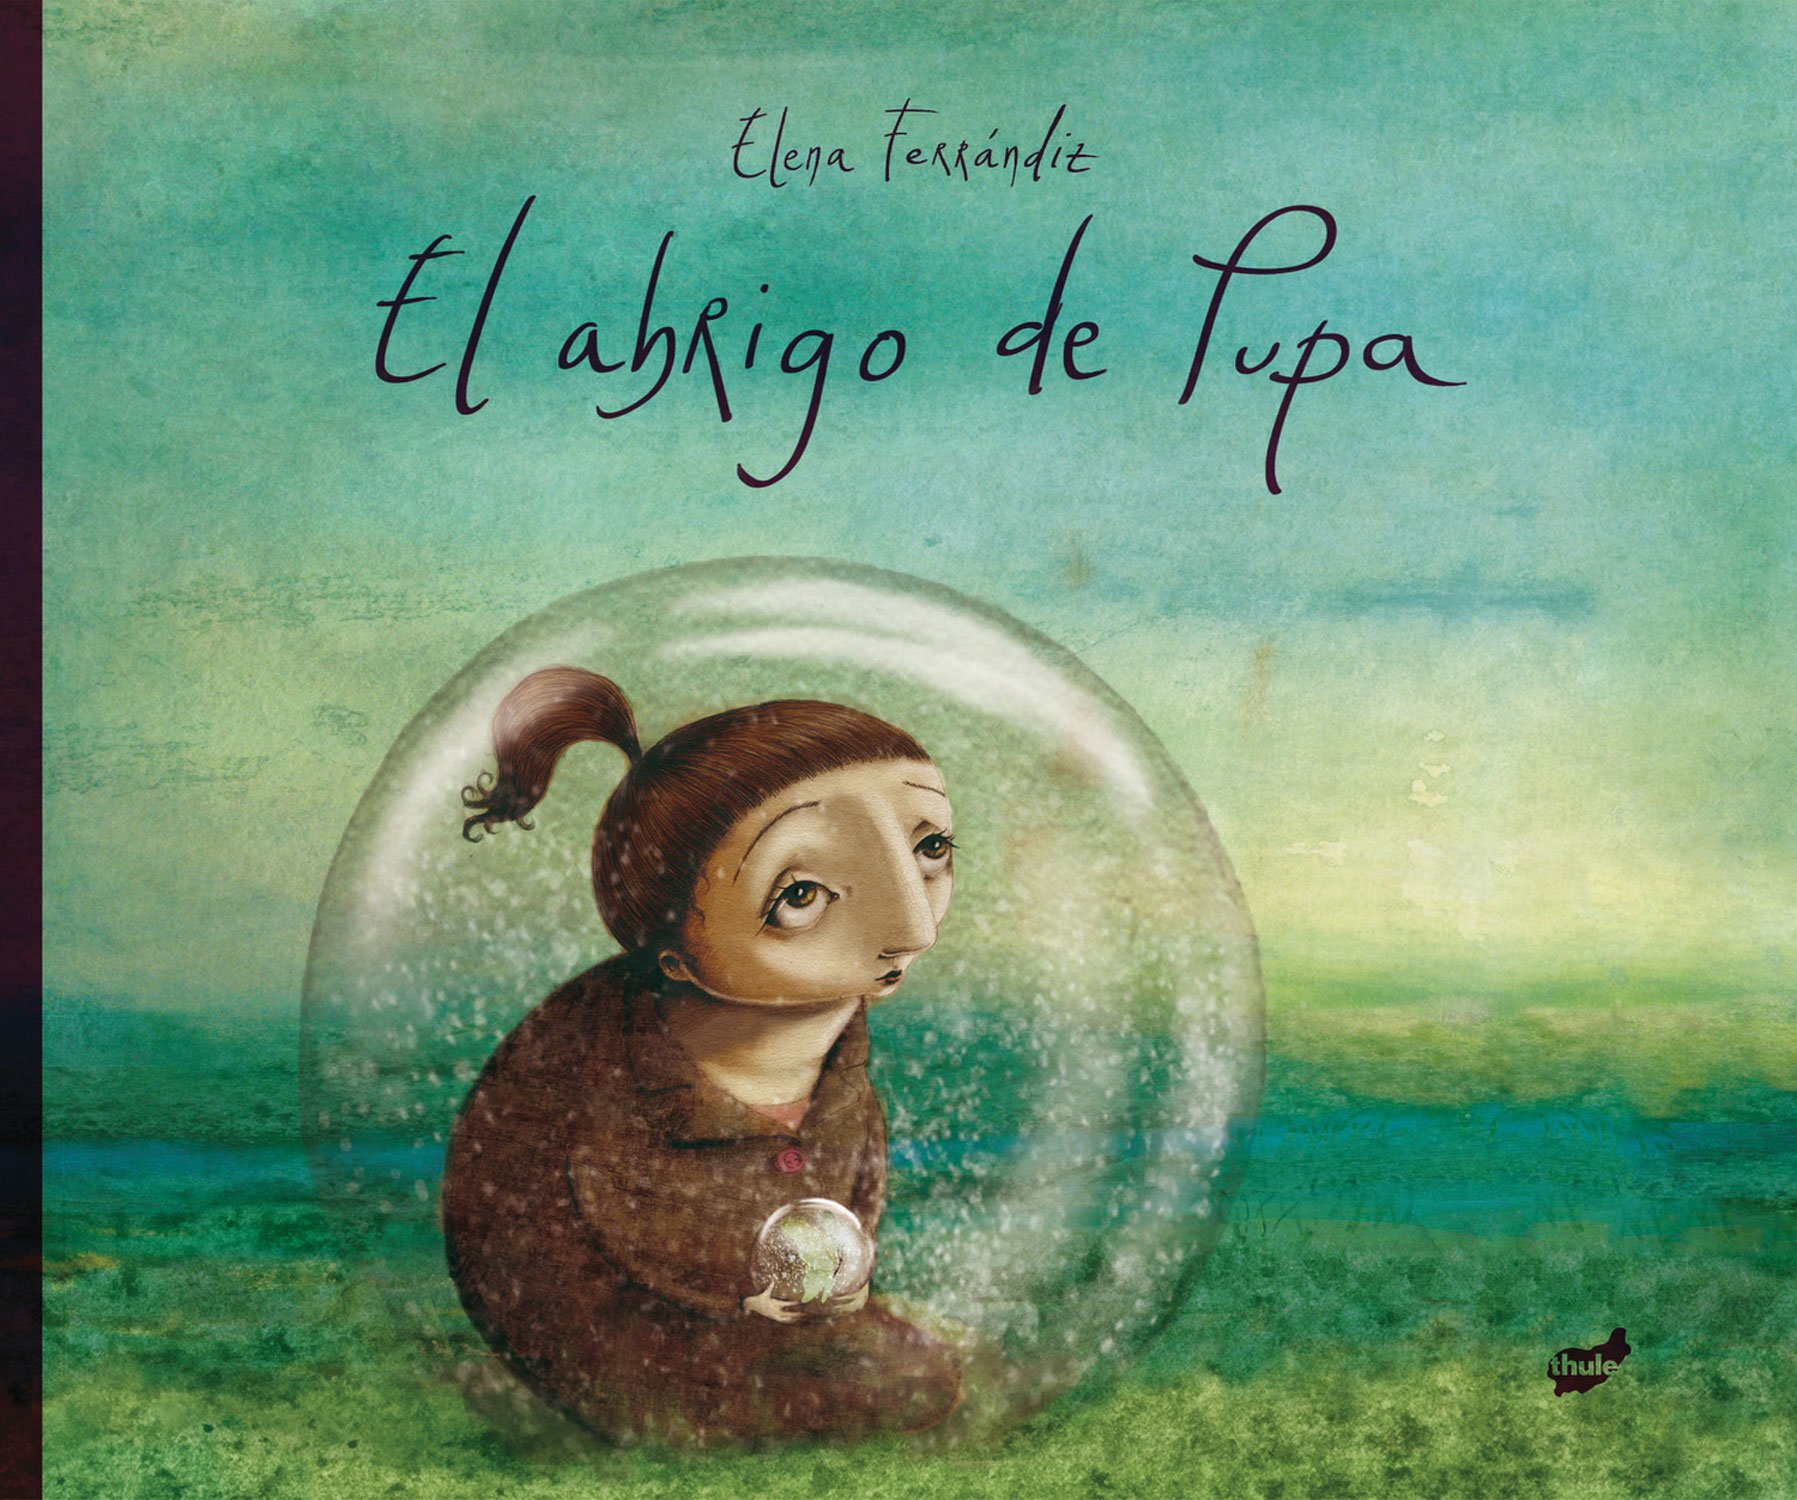 El abrigo de Pupa (Spanish Edition) (Spanish) Hardcover – June 1, 2012